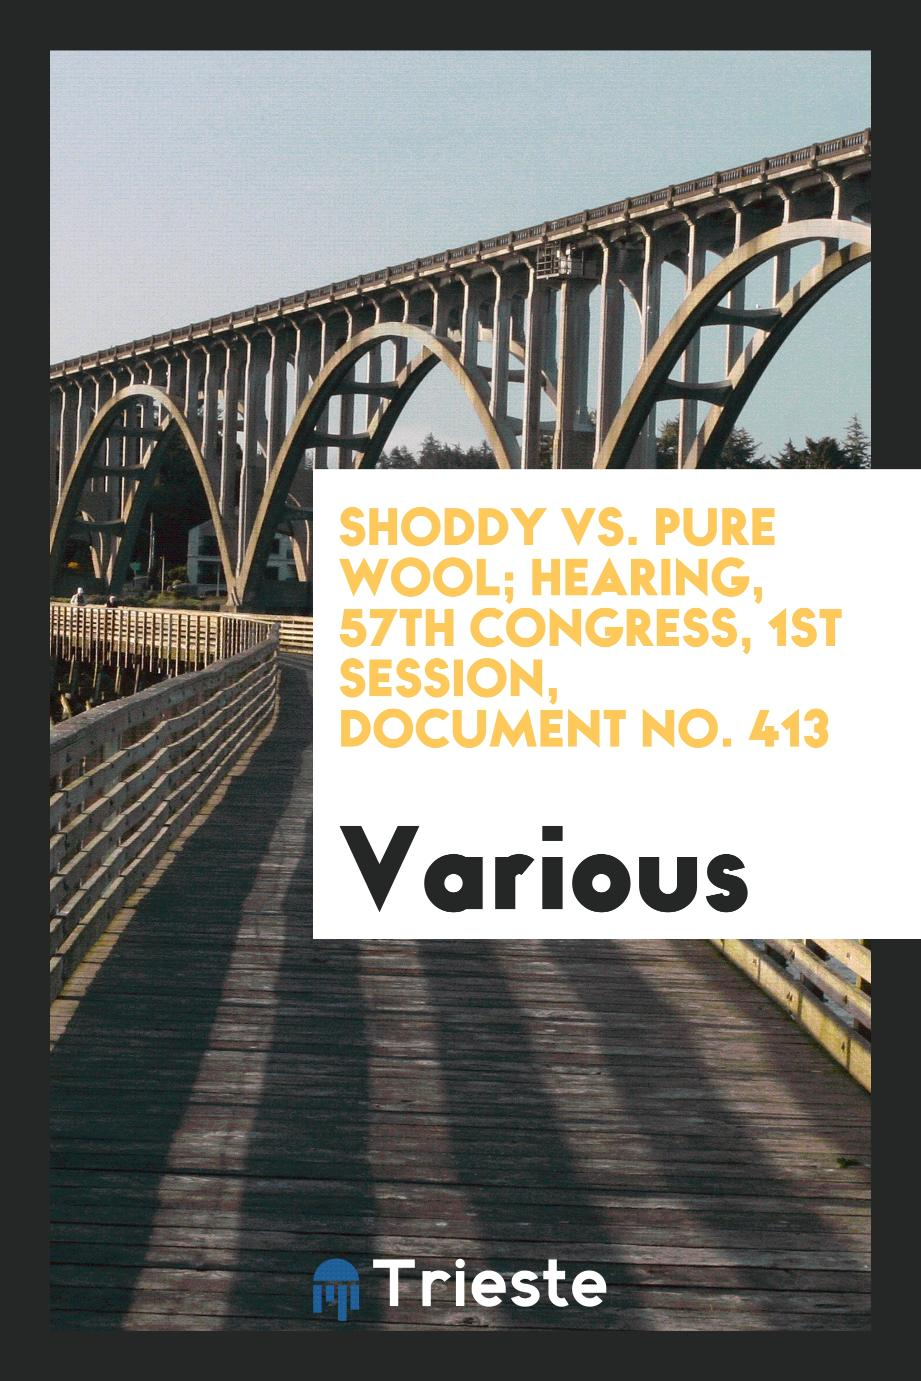 Shoddy vs. pure wool; hearing, 57th Congress, 1st Session, Document No. 413